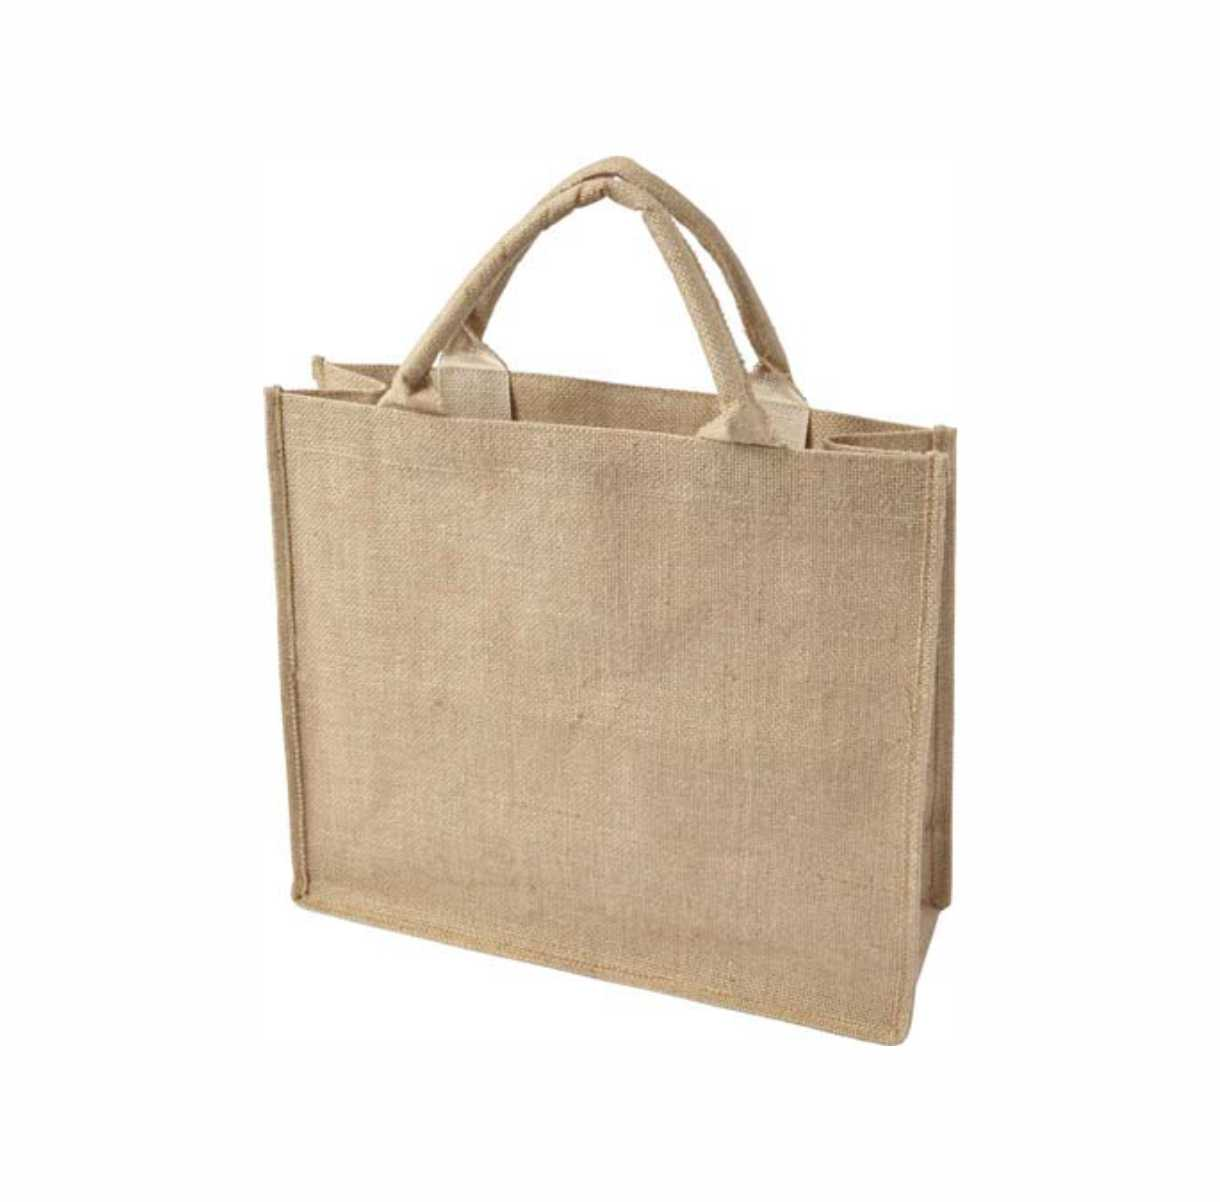 Jute shopping bag with short handles, gusset and laminated interior. - Natural giv-7822